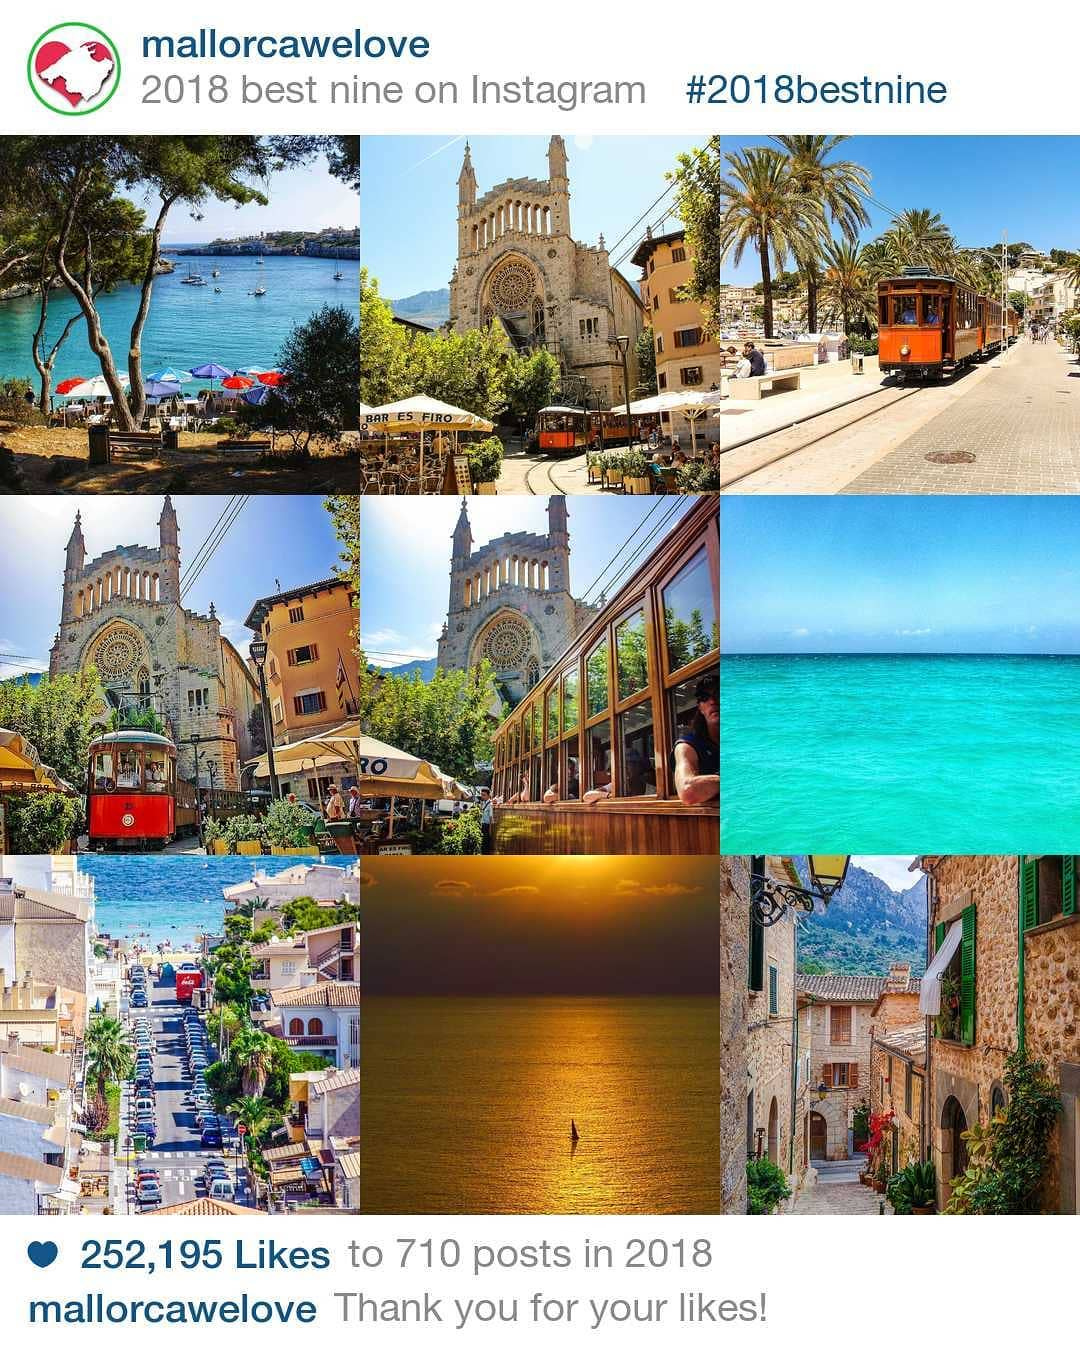 We-Love-Mallorca-Instagram-Best-Nine